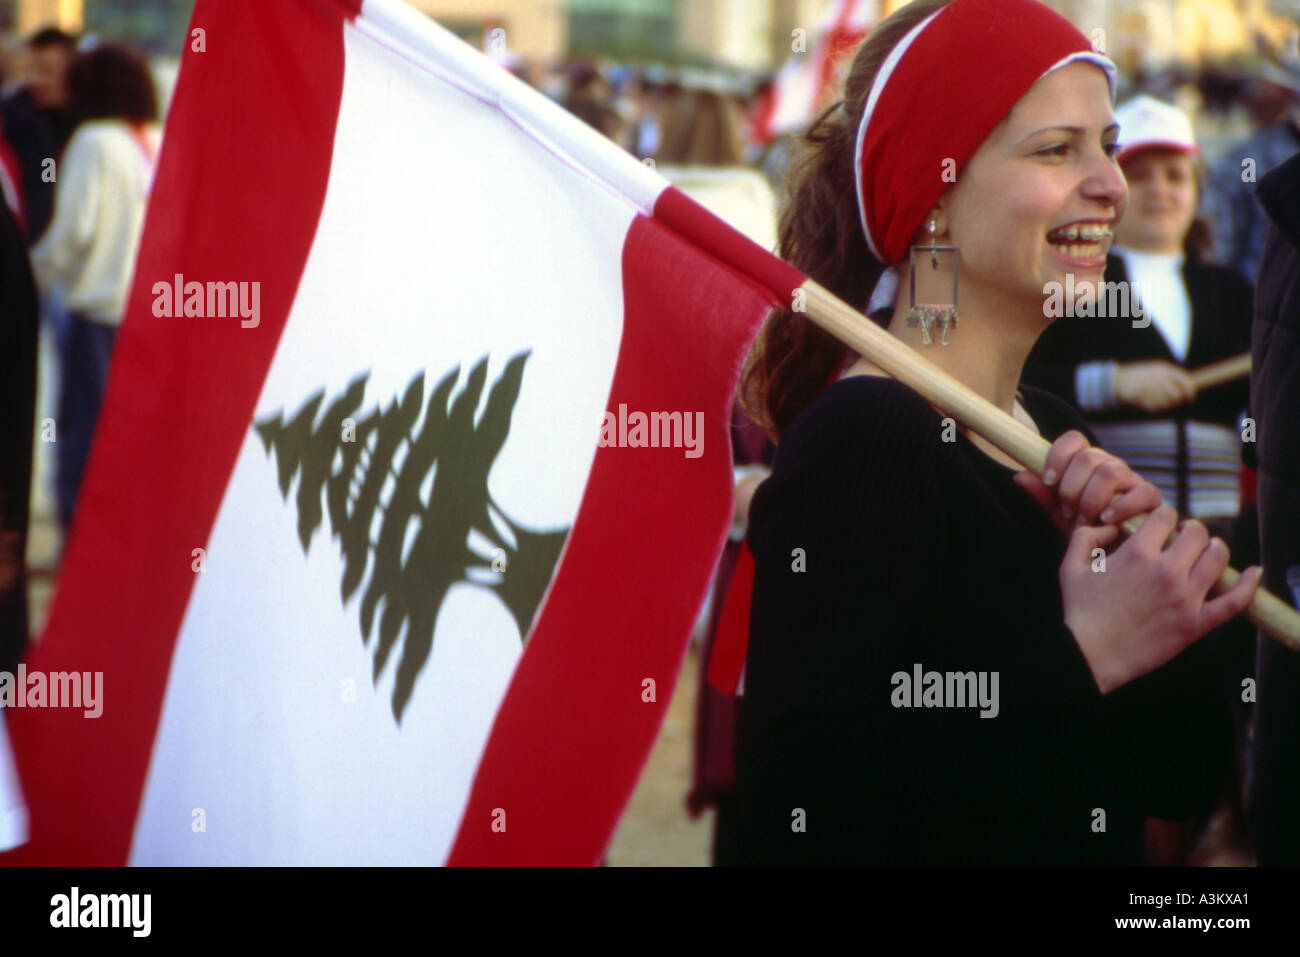 free and easy relaxed beirut lebanon Stock Photo